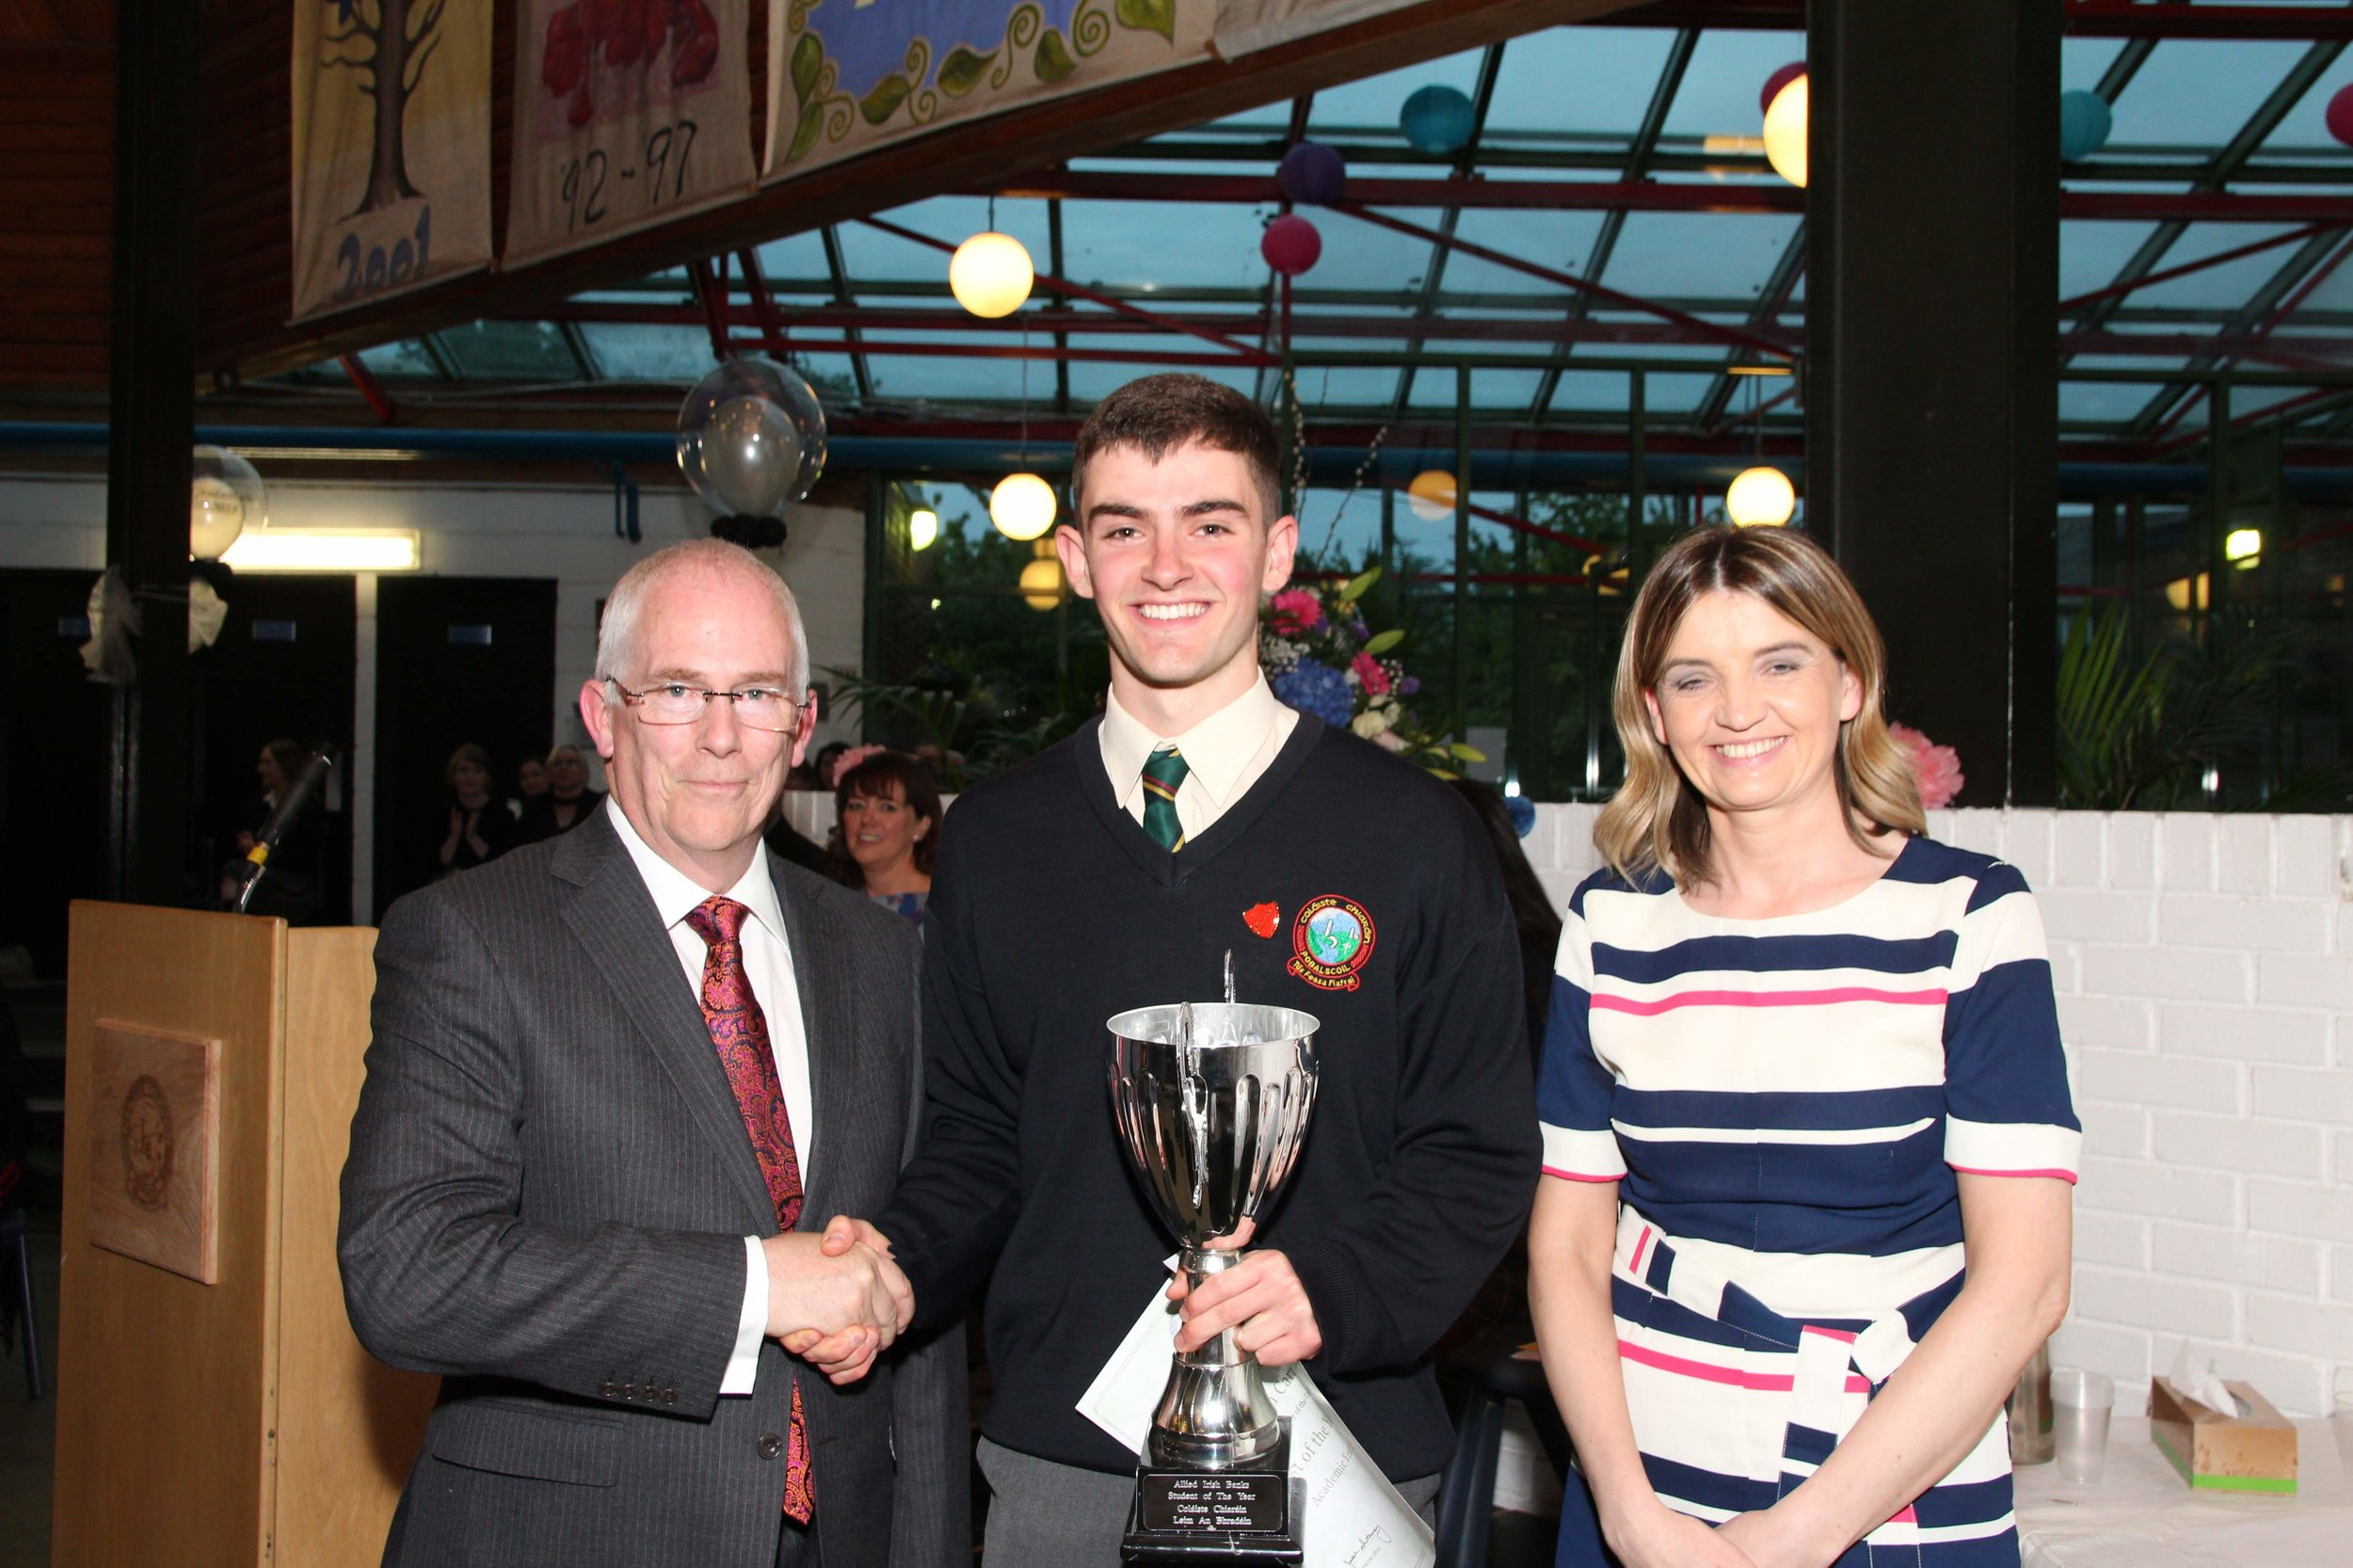 Nathan Carney. Overall student of the year.